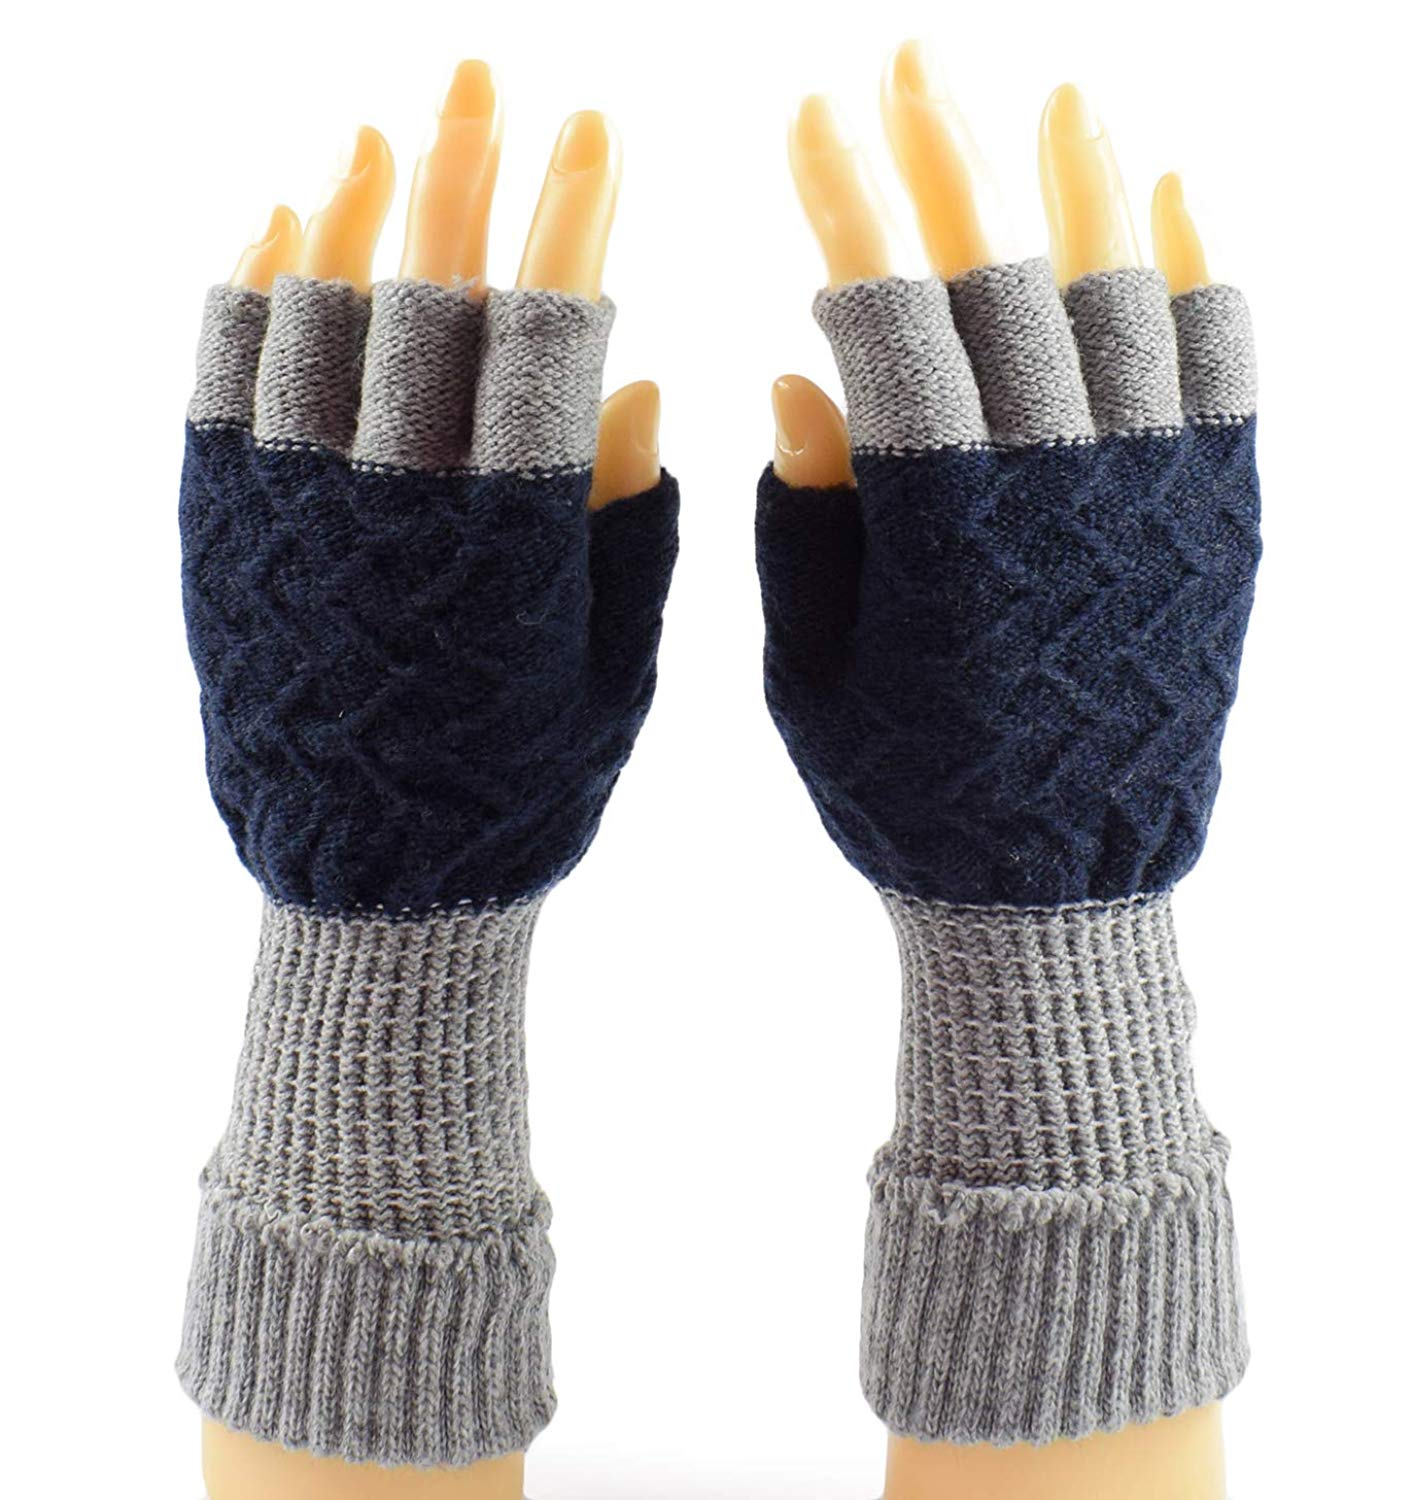 e243420e0db Get Quotations · Mens Knit Fingerless Gloves Soft Winter Wrist Gloves Warm  Driving Half Gloves